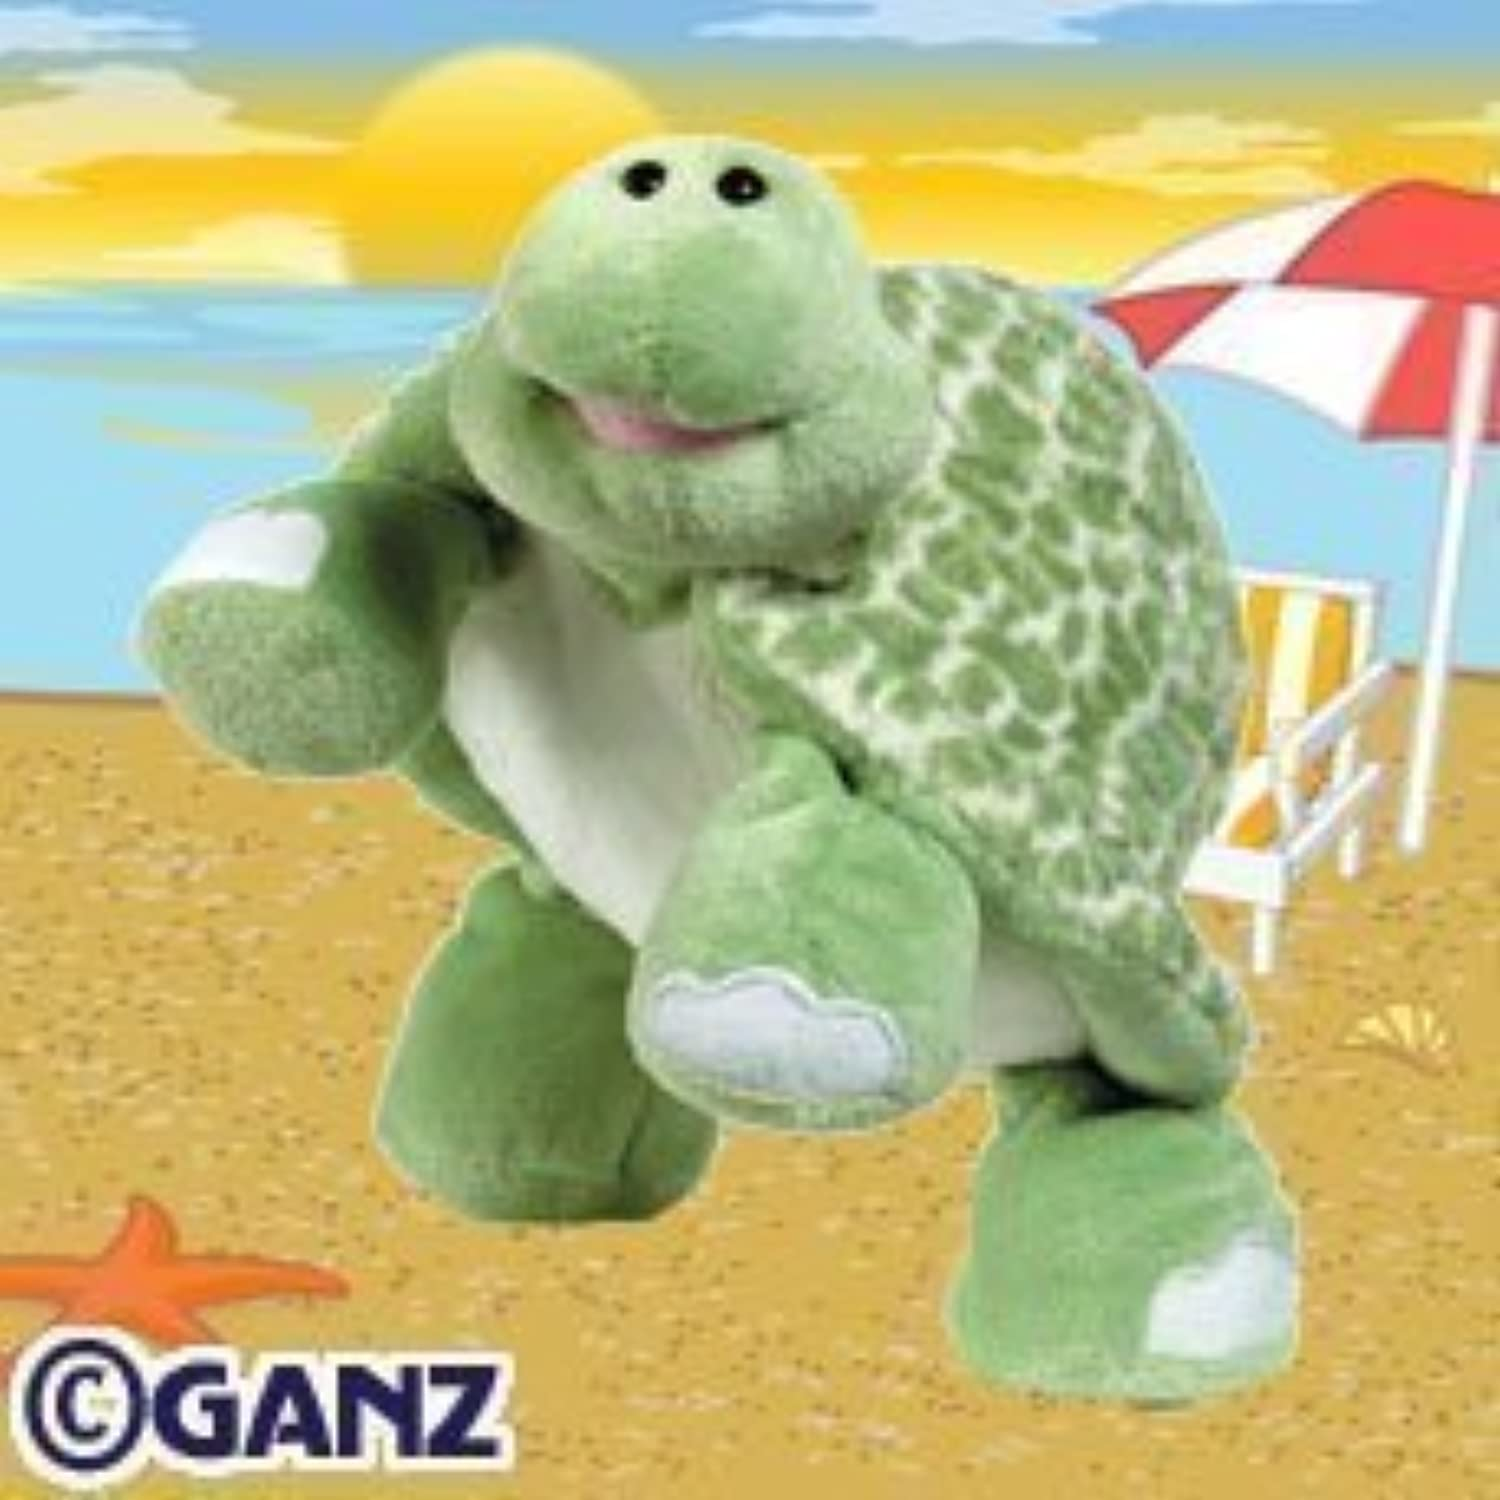 Webkinz Plush Stuffed Animal Spotted Turtle by Ganz [Toy]